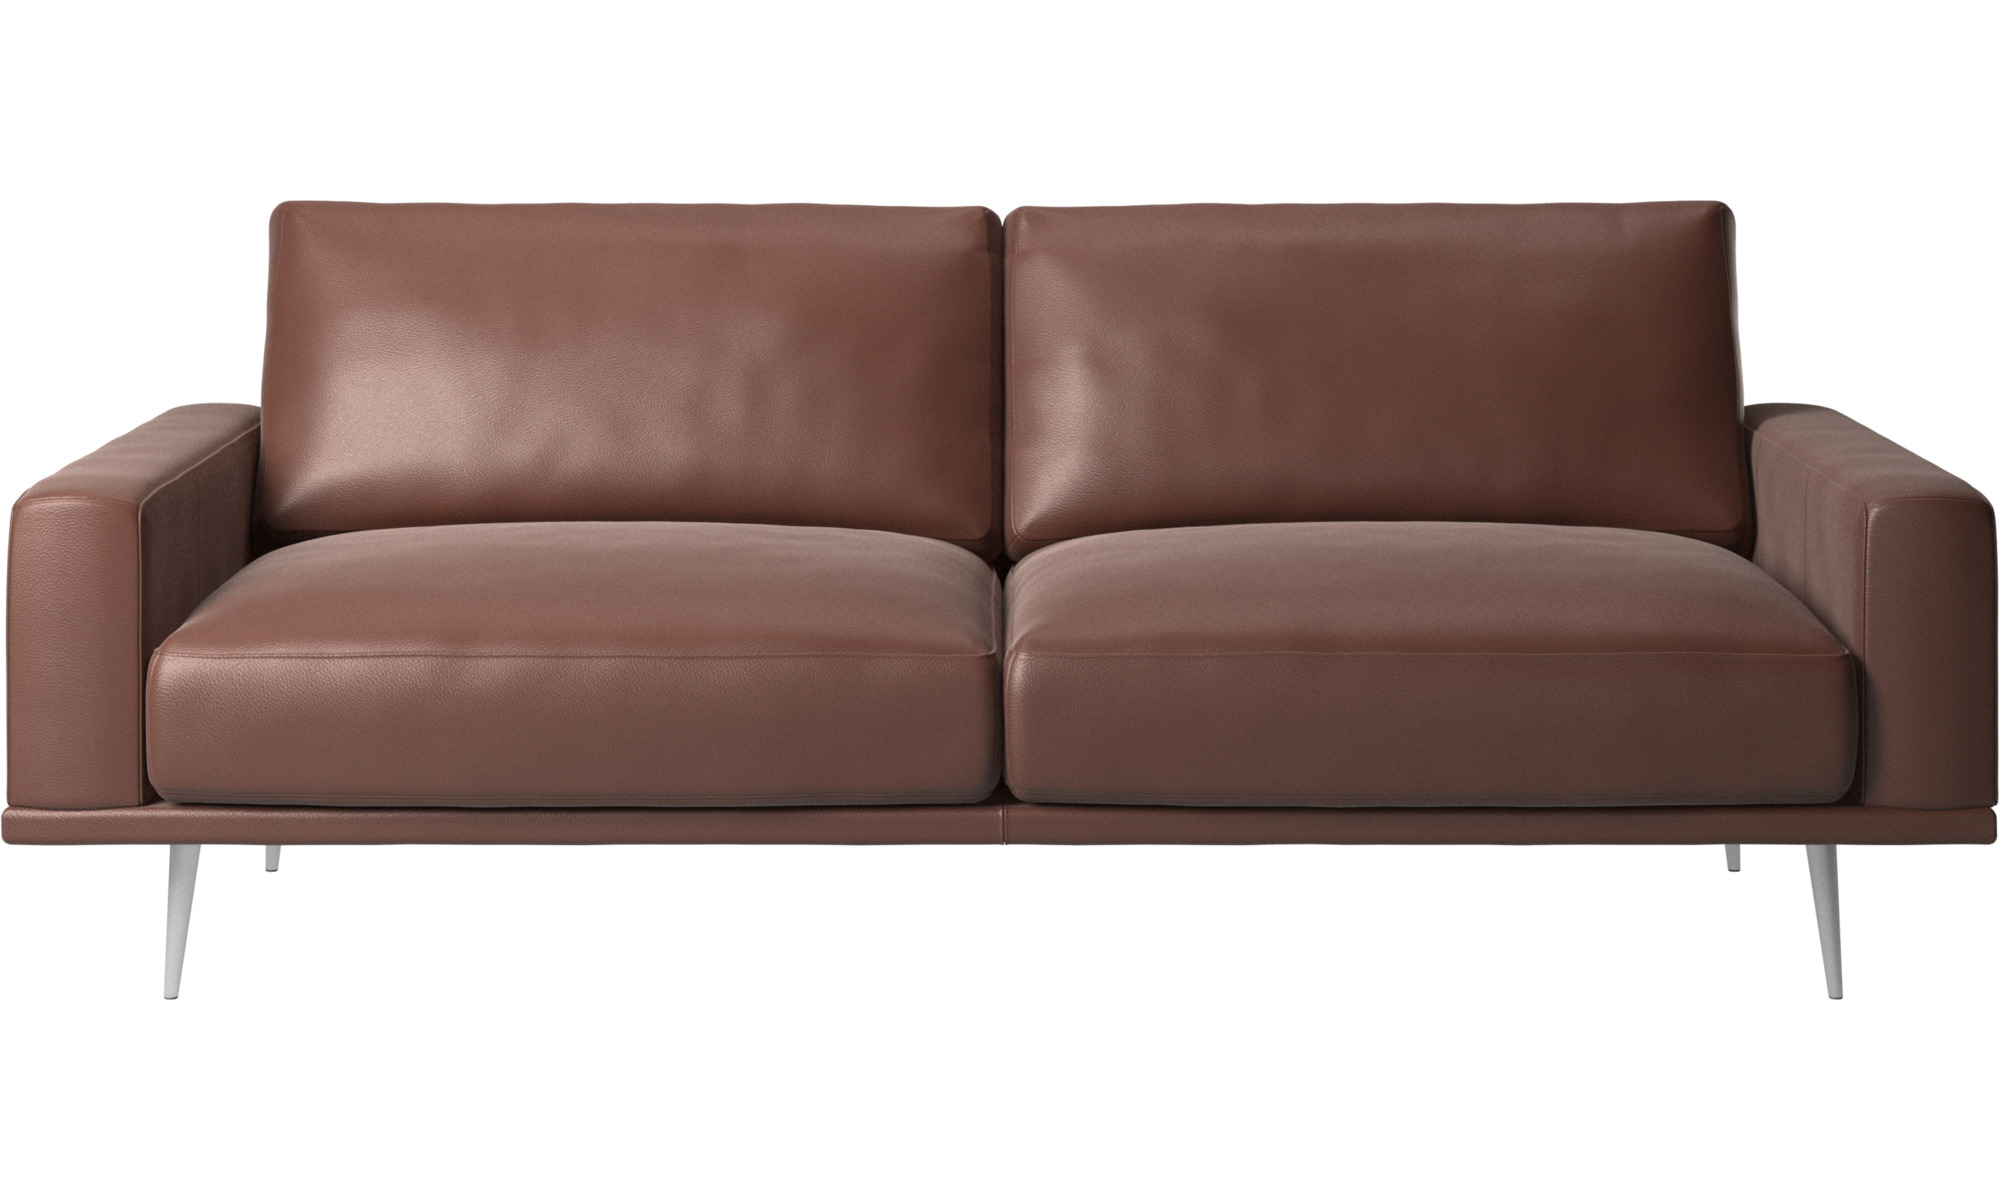 2 5 seater sofas carlton sofa boconcept for Sofa 7 seater